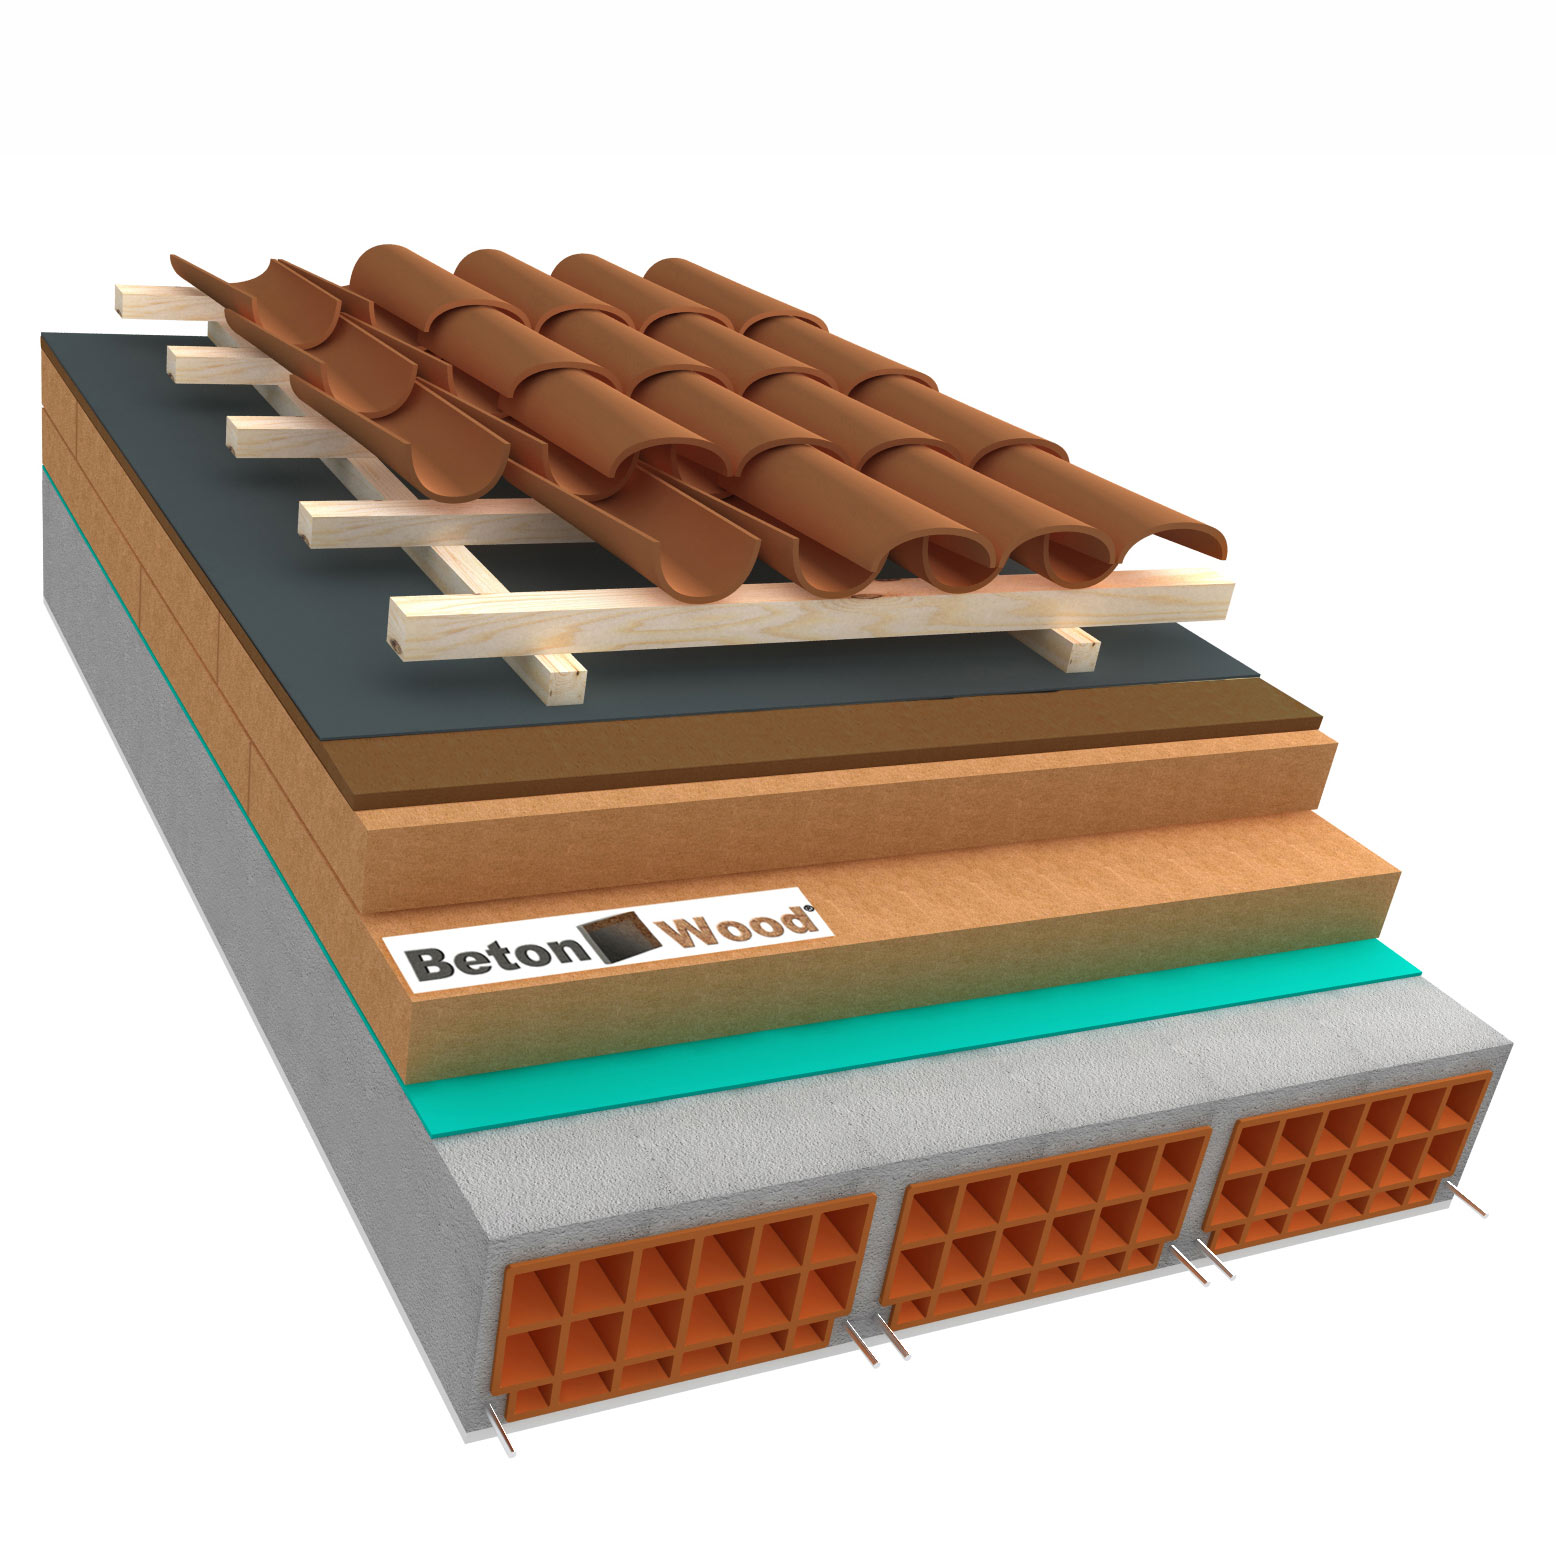 Fiber wood Therm and Bitumfiber on concrete roof